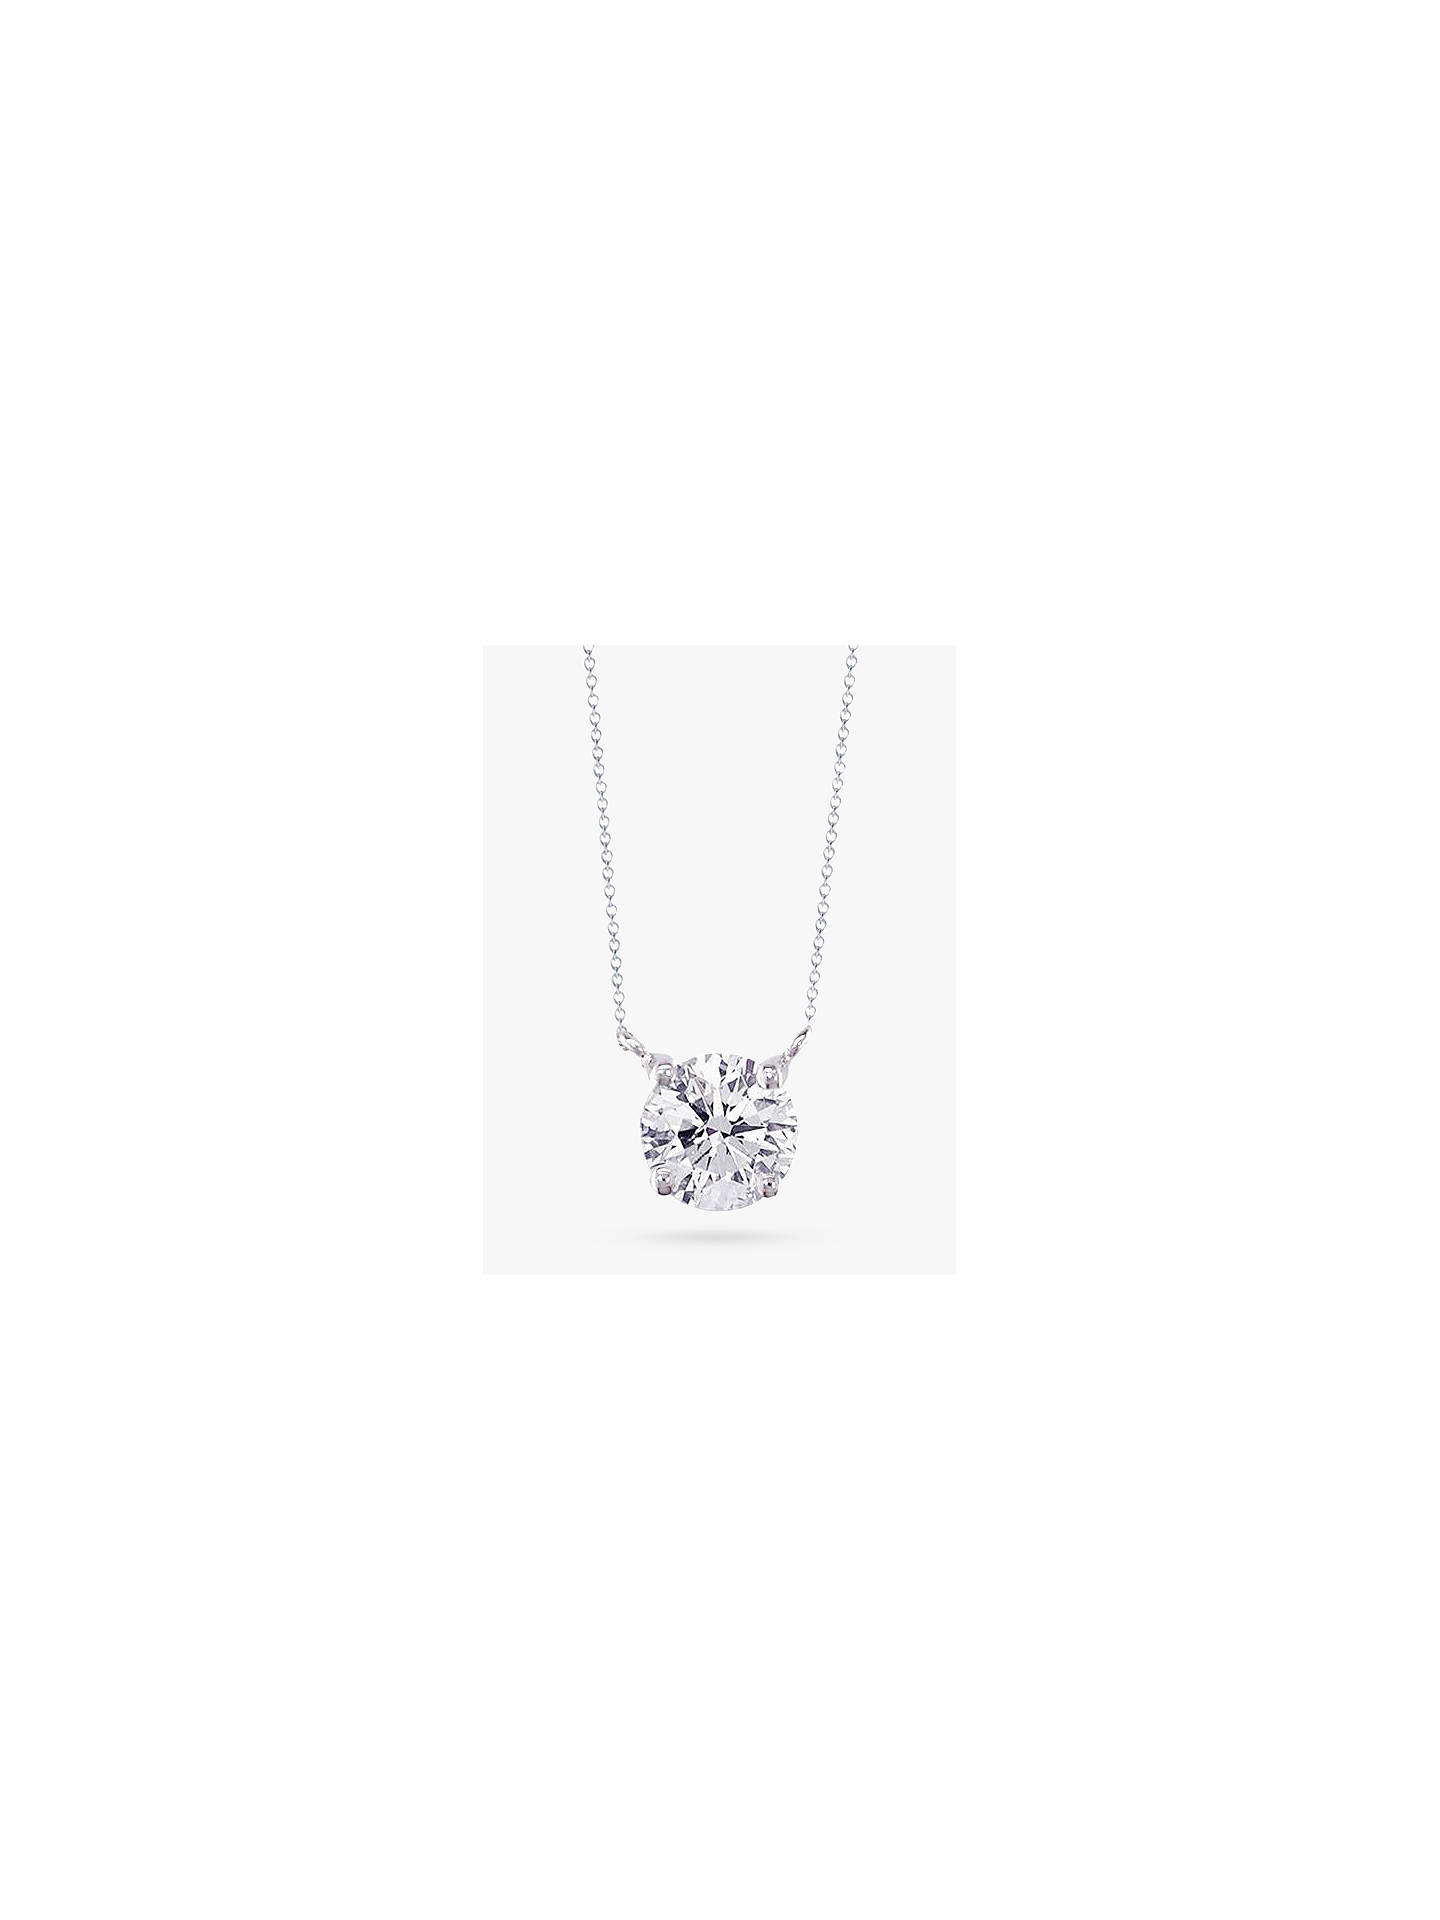 Buy E.W Adams 18ct White Gold Diamond Solitaire Pendant Necklace Online at johnlewis.com